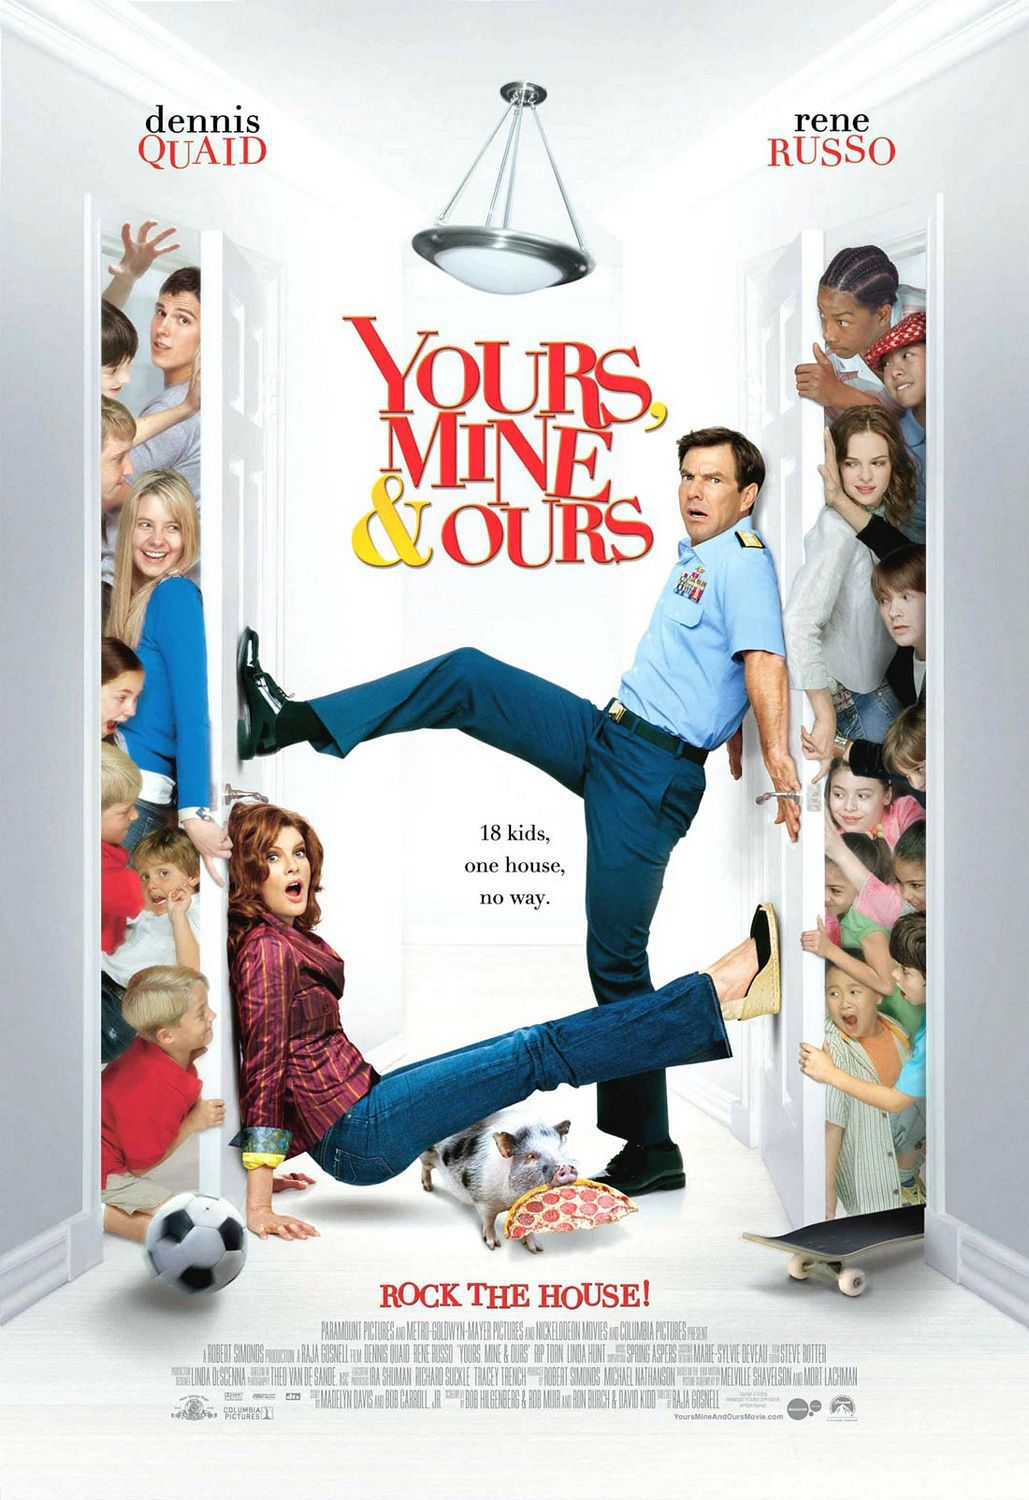 Appuntamento sotto il letto - Yours mine and ours remake di un classico del 1968 - A Classic Big Family Commedy ...